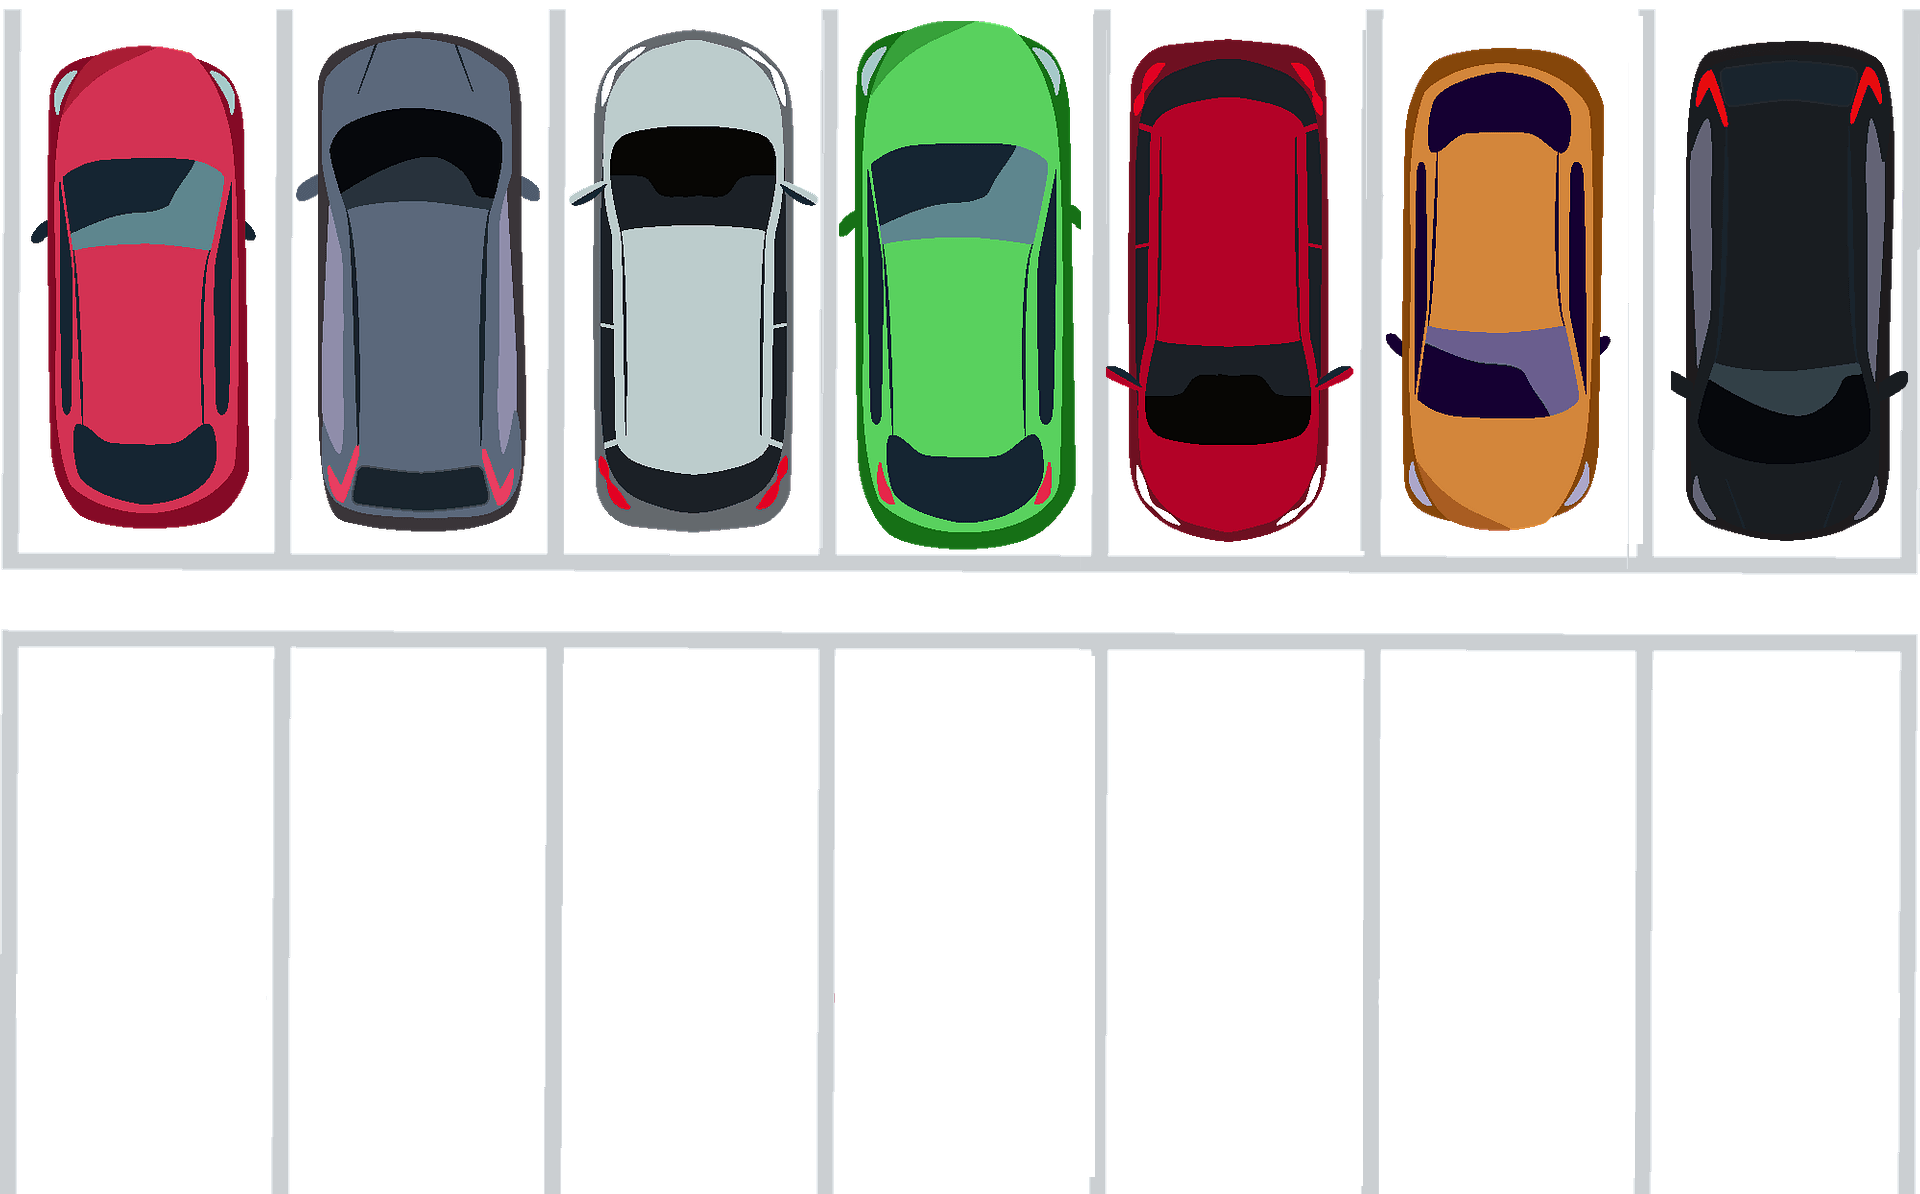 A parking lot, having all cars on the first row, and empty parking spots on the second row